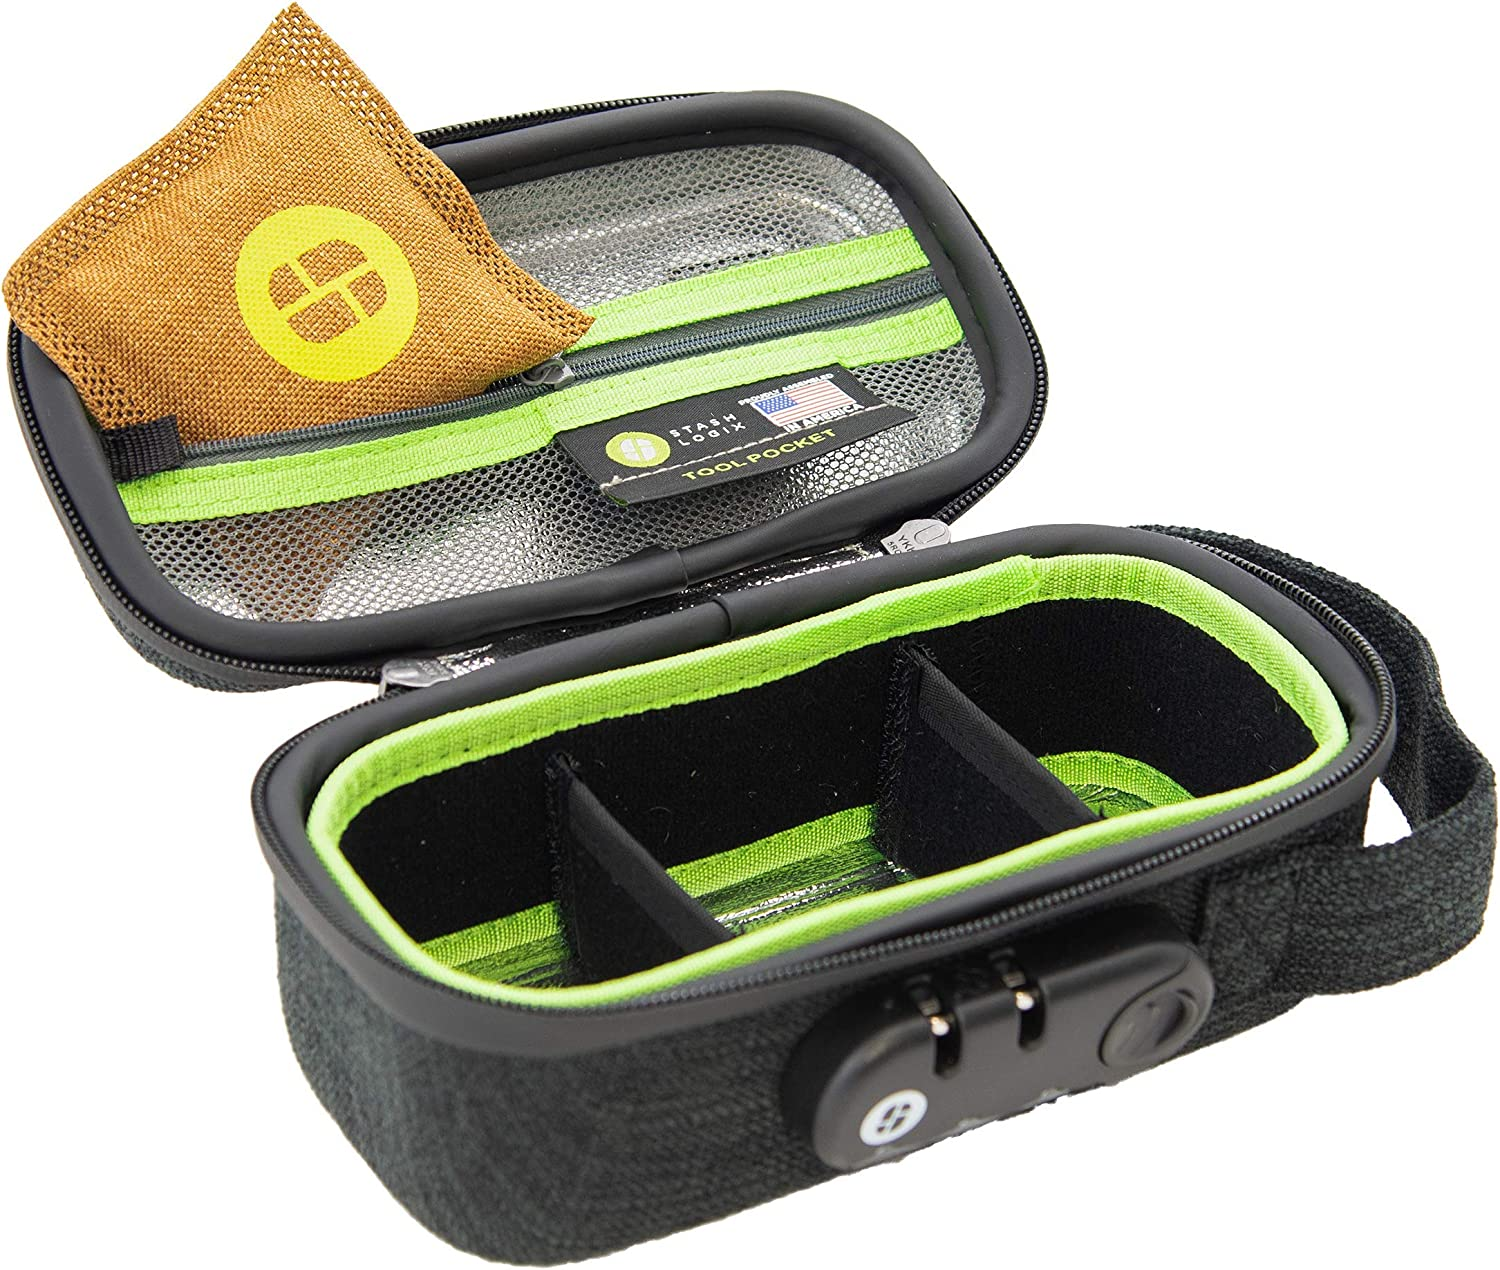 STASHLOGIX Silgreenon - Locking Stash Bag with Odor Control (Black, Small)